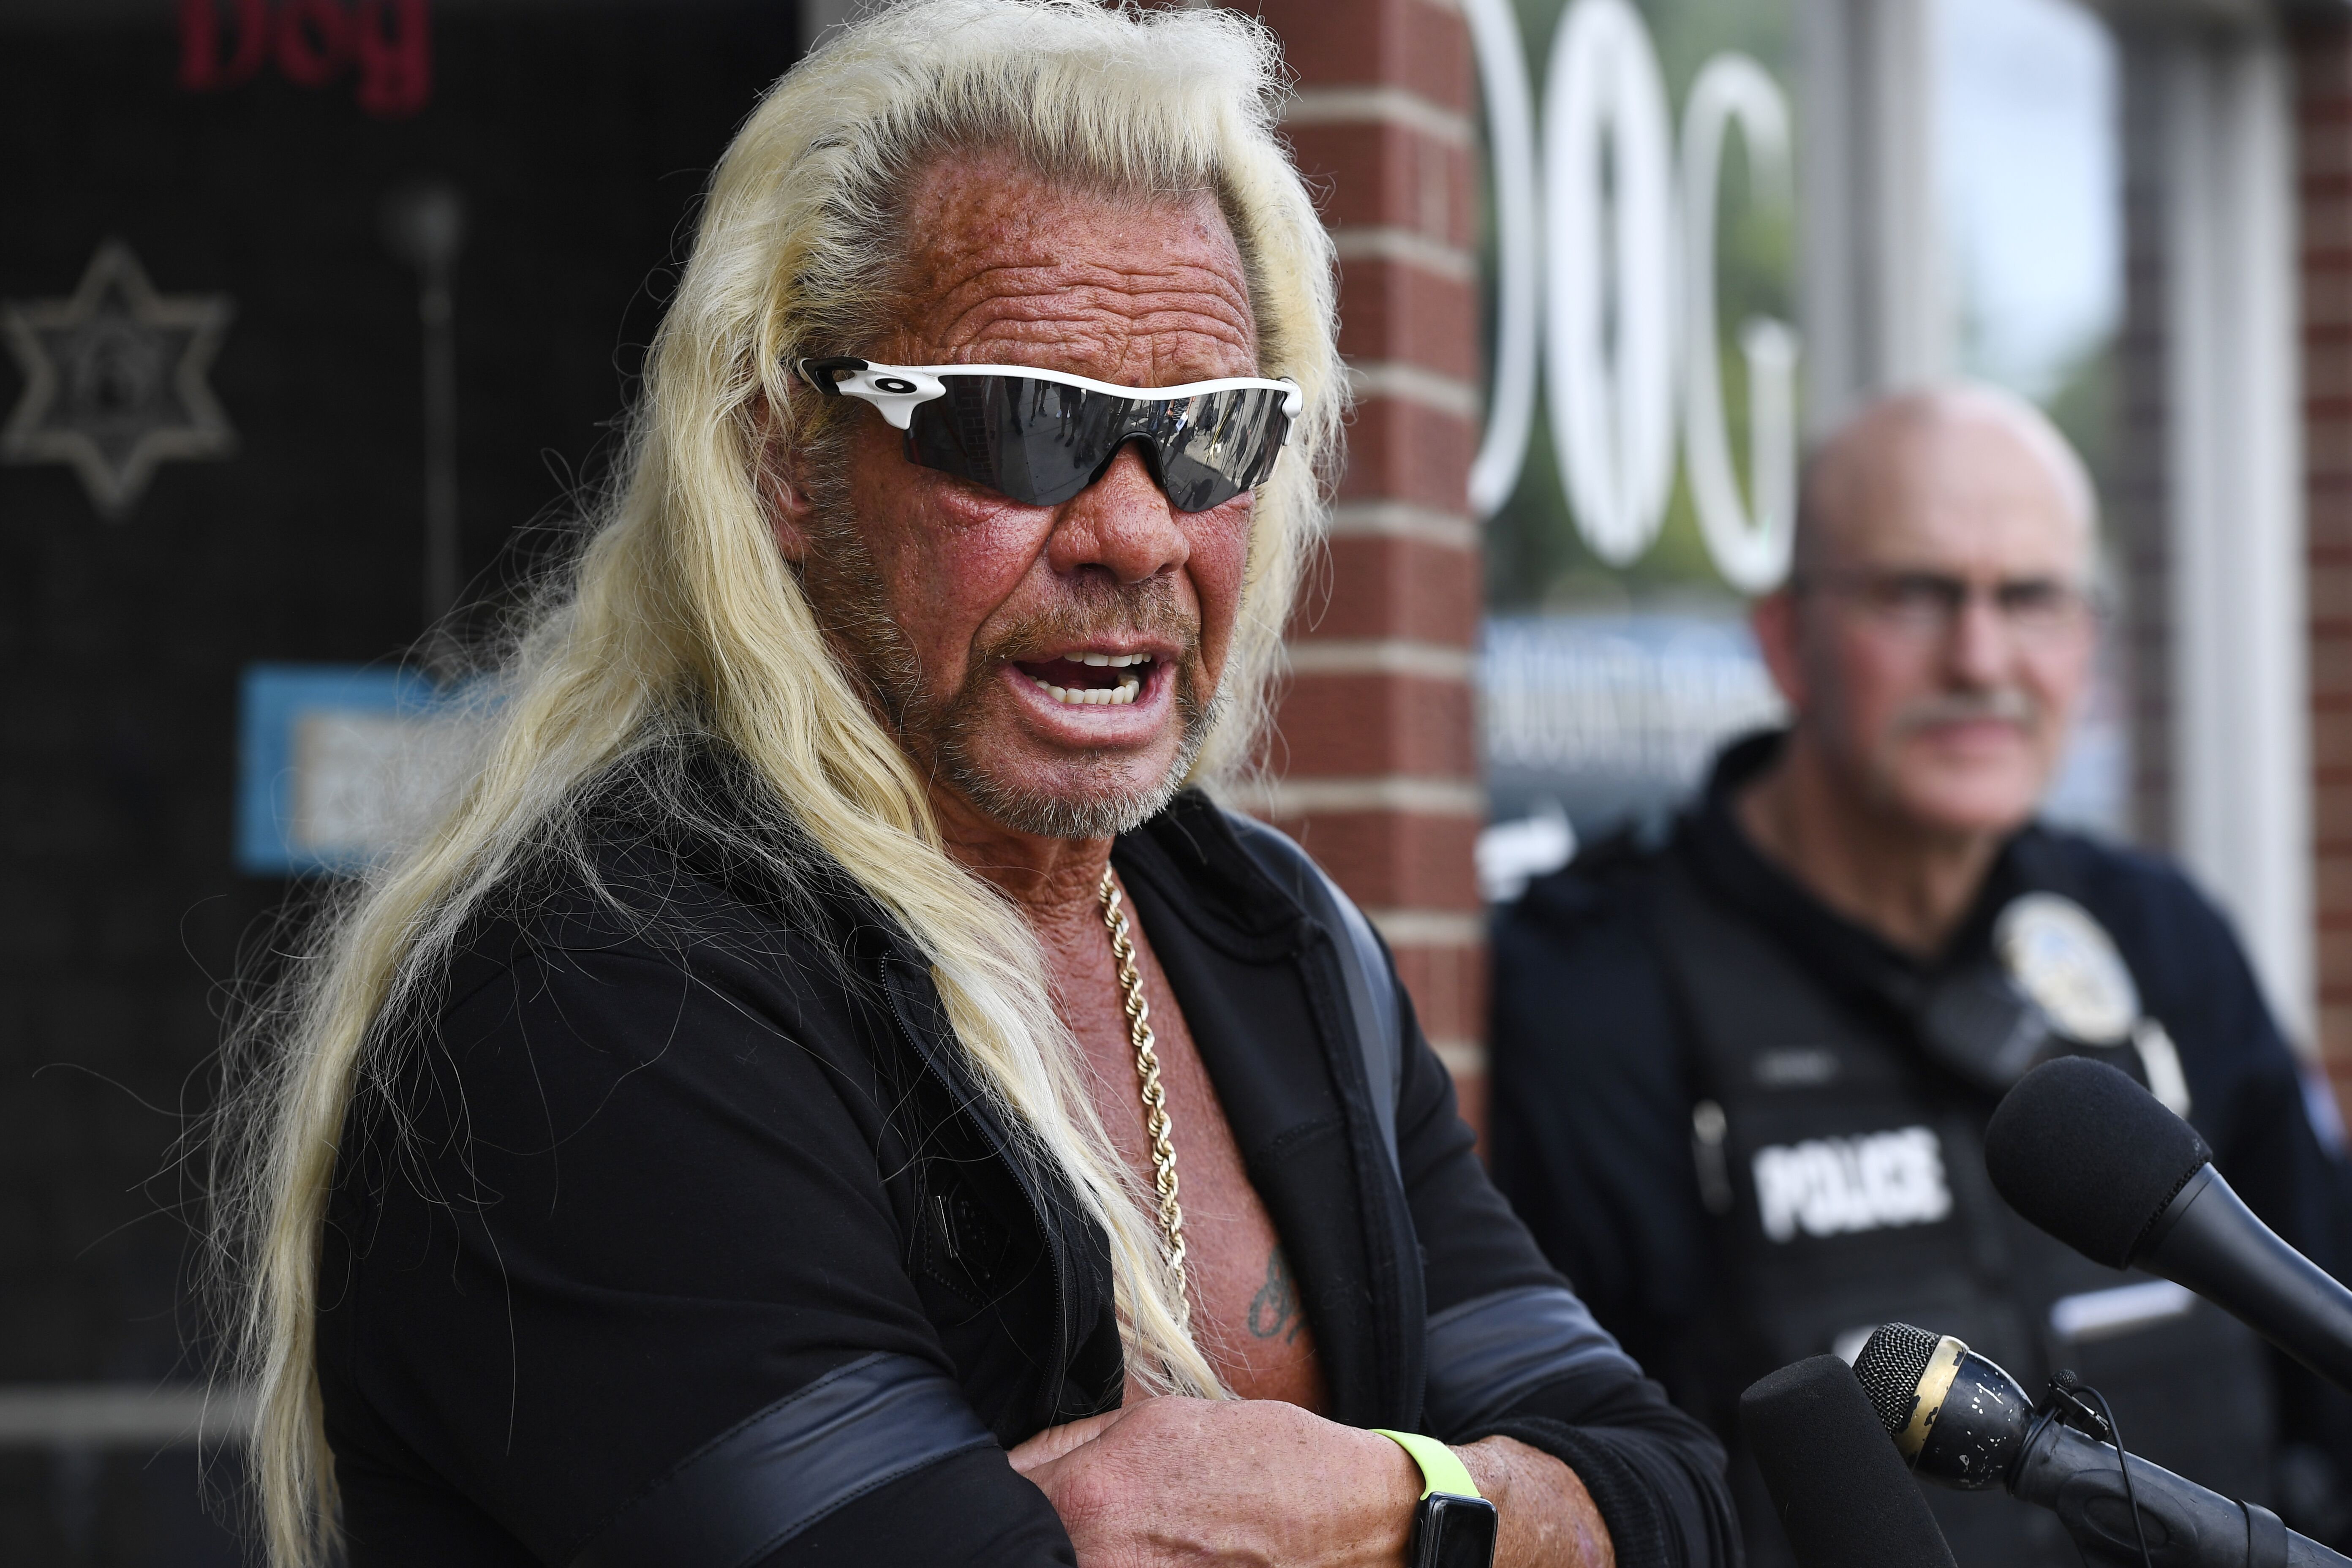 """Duane """"Dog The Bounty Hunter"""" Chapman during a press conference in front of his store August 02, 2019 